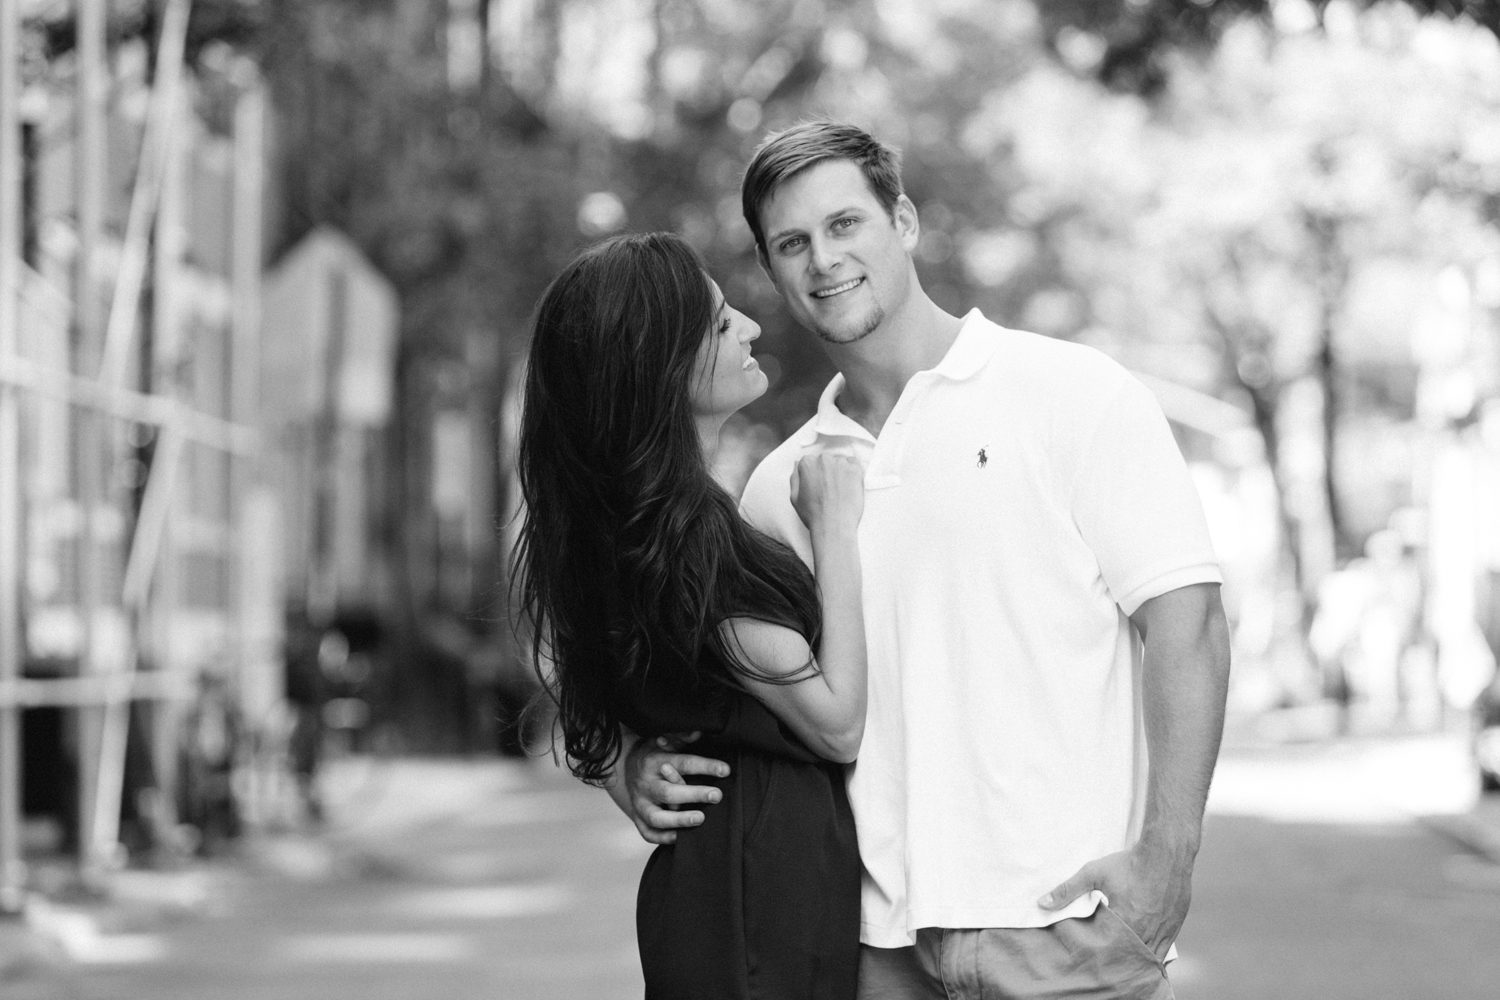 NYC-engagement-photos-by-Tanya-Isaeva-55.jpg